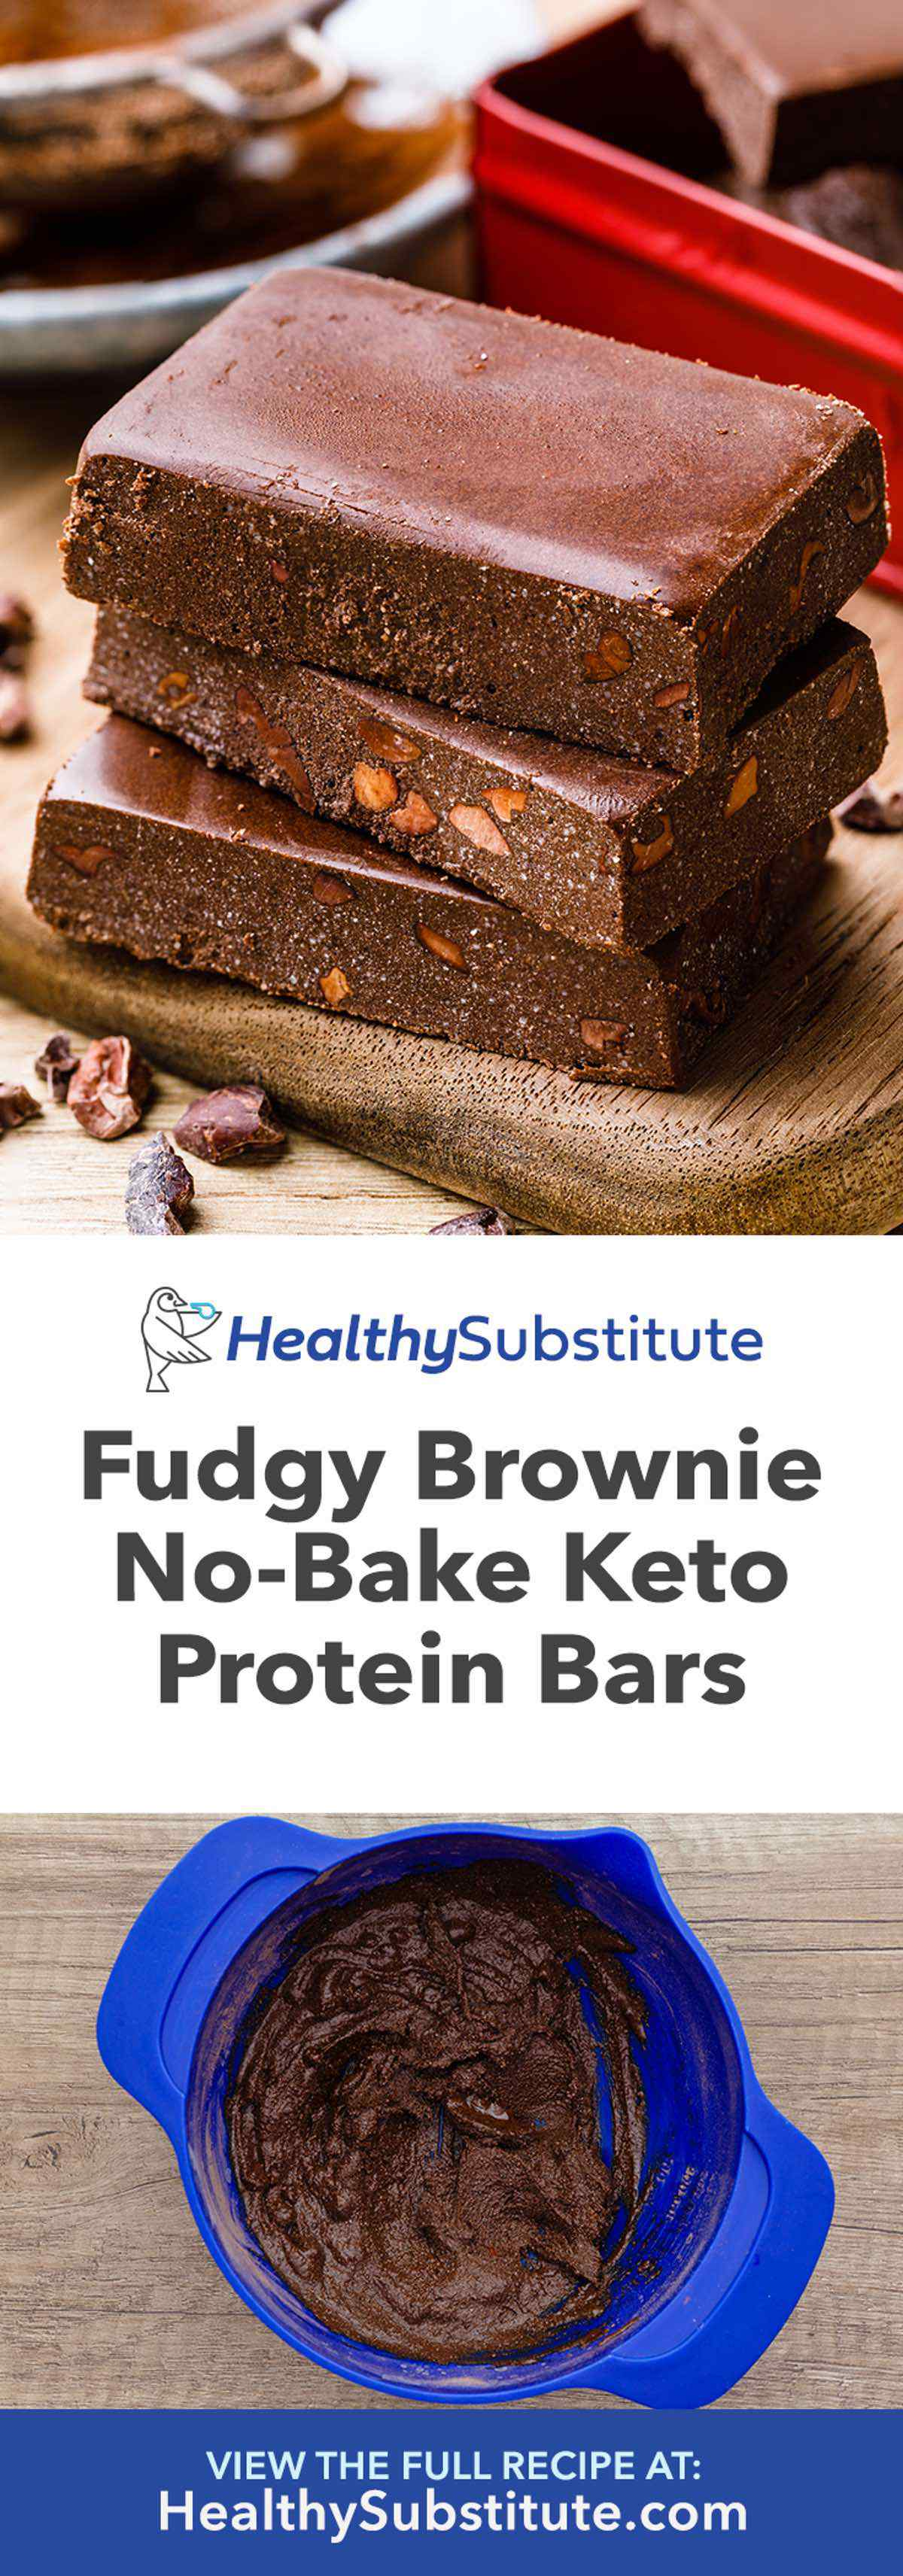 Homemade Fudgy Brownie Keto Protein Bars No Bake High Protein Snack Healthy Substitute